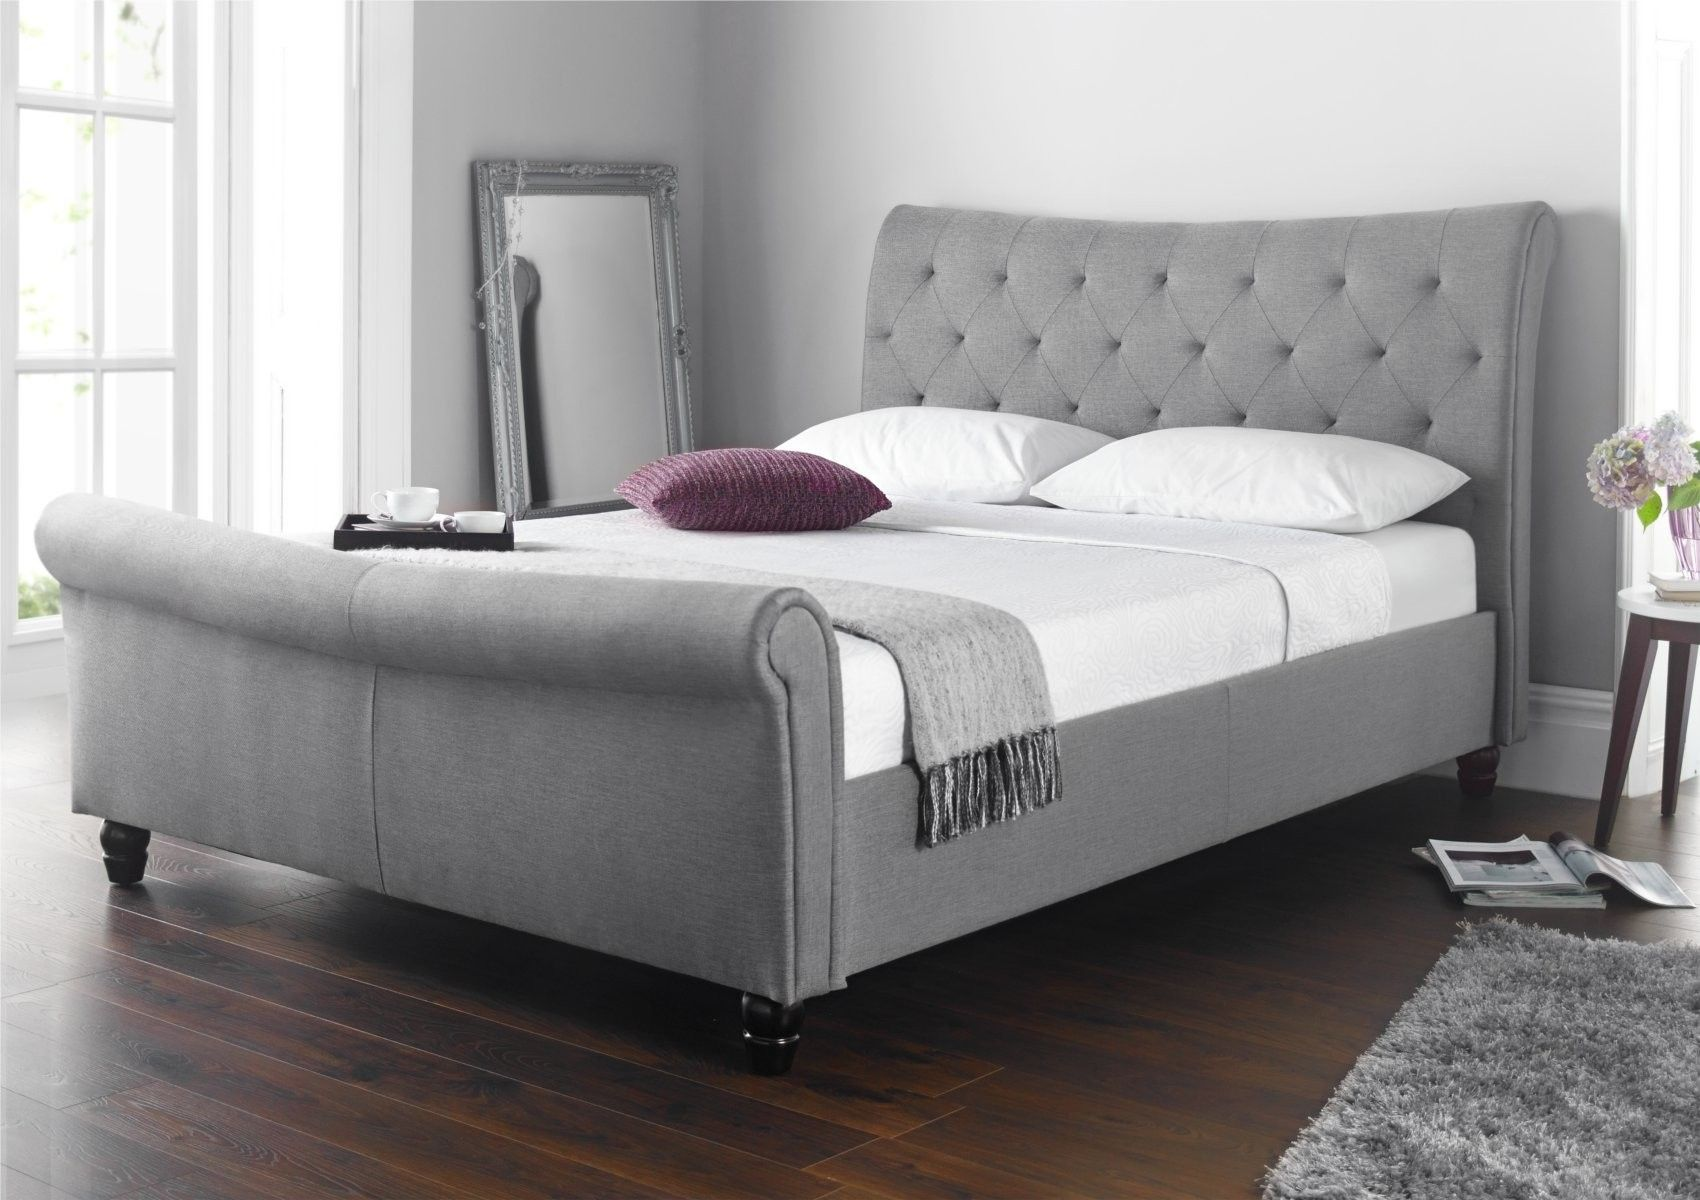 Seville Upholstered Sleigh Bed